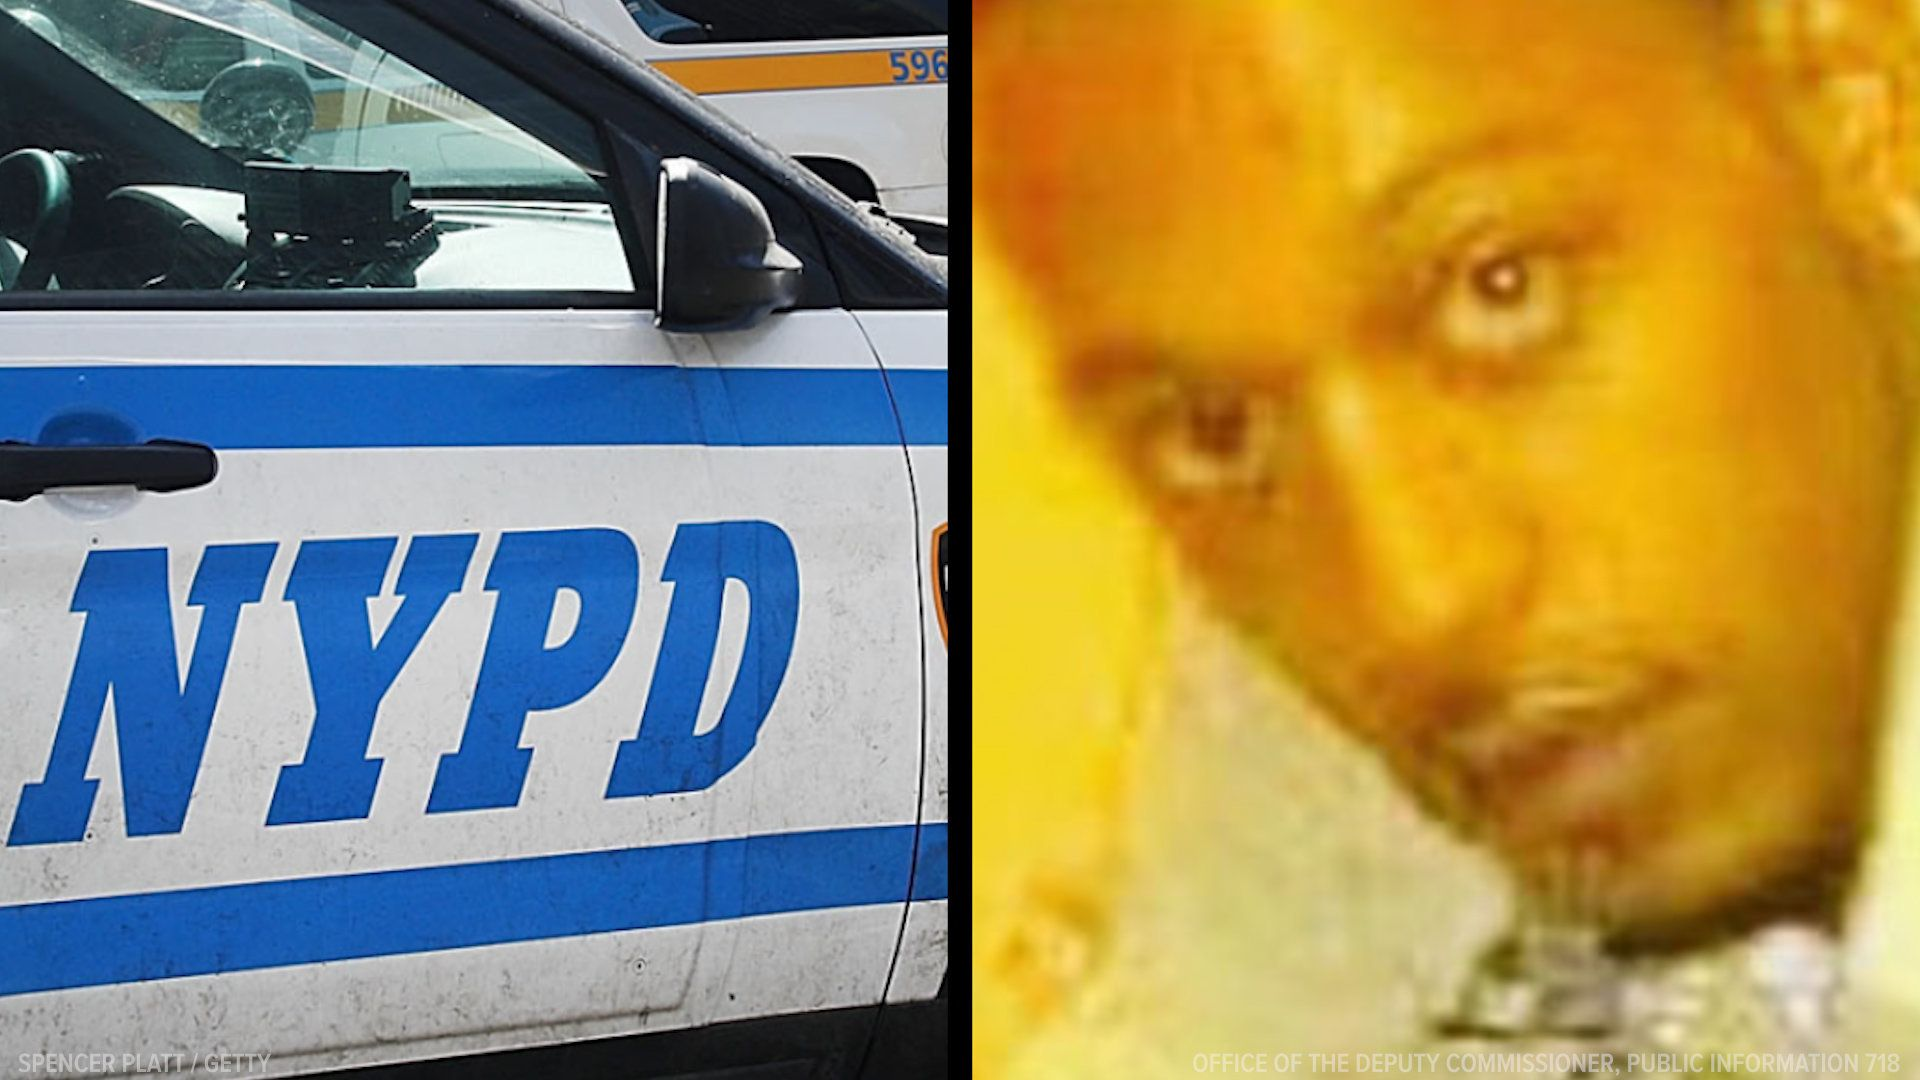 Another unarmed black man was fatally gunned down by police